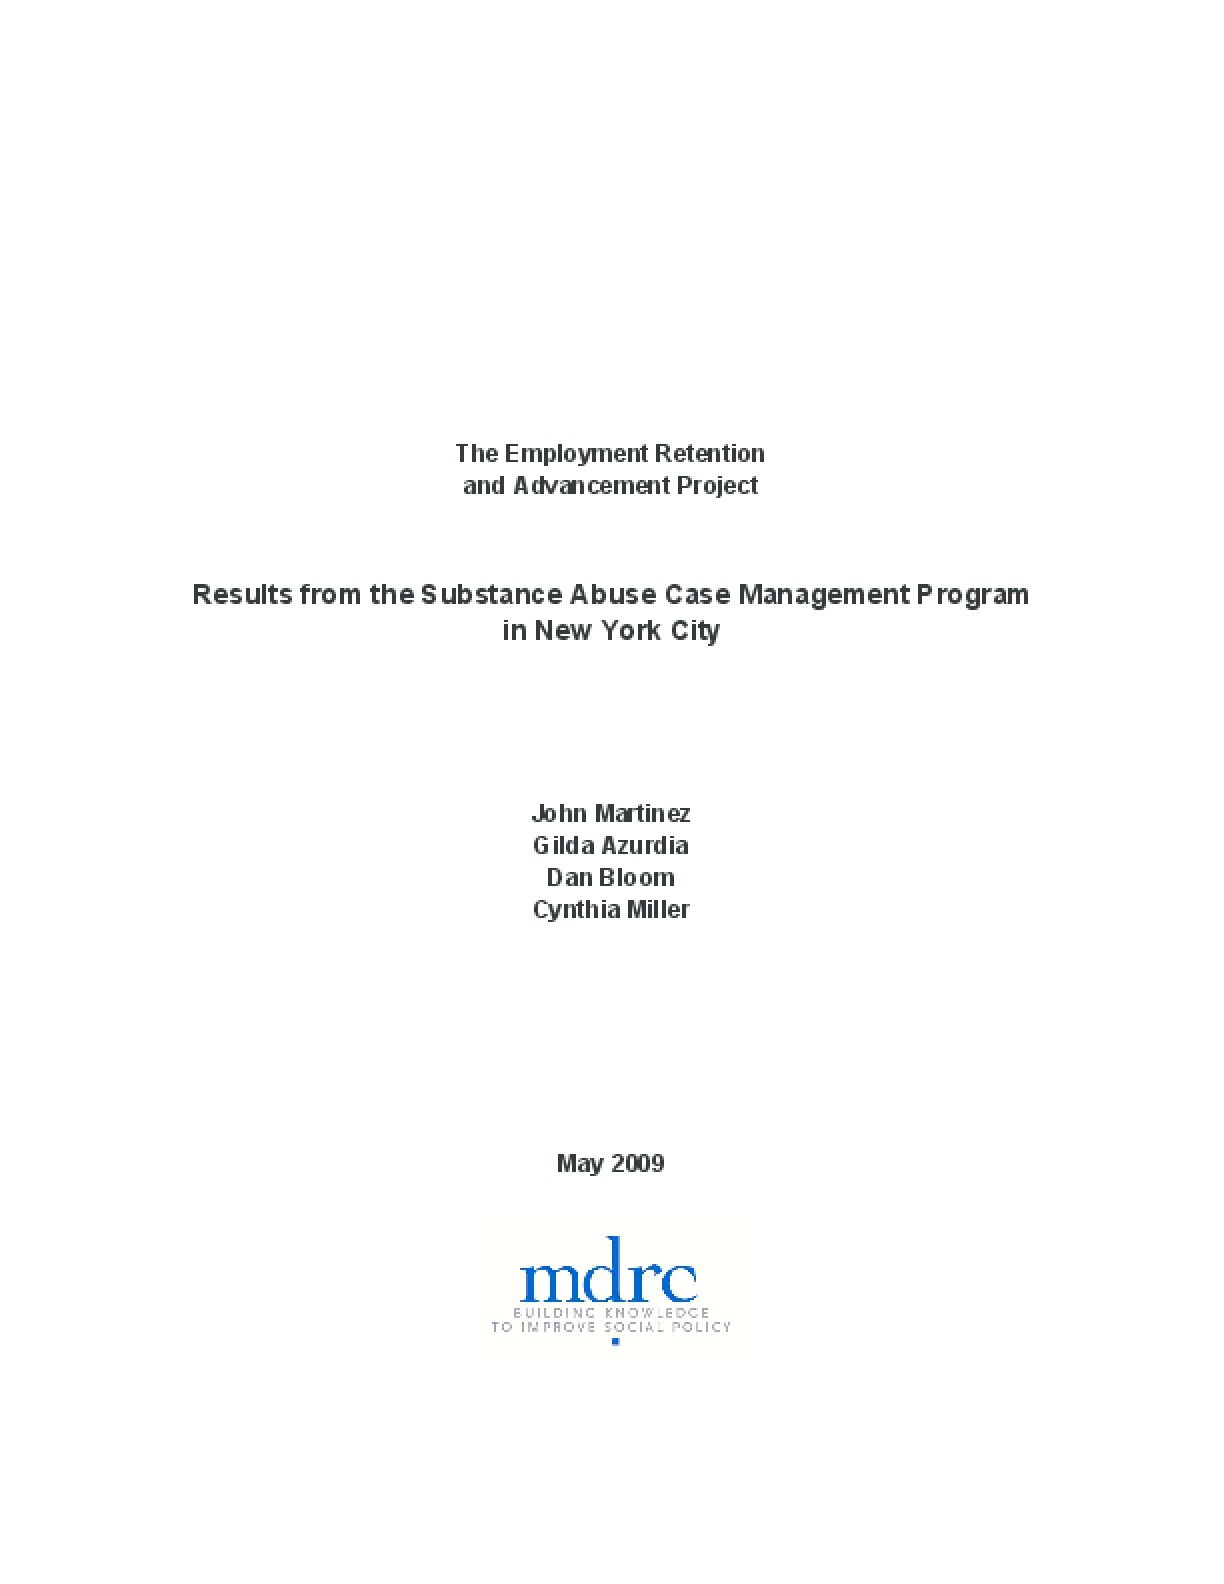 The Employment Retention and Advancement Project: Results from the Substance Abuse Case Management Program in New York City